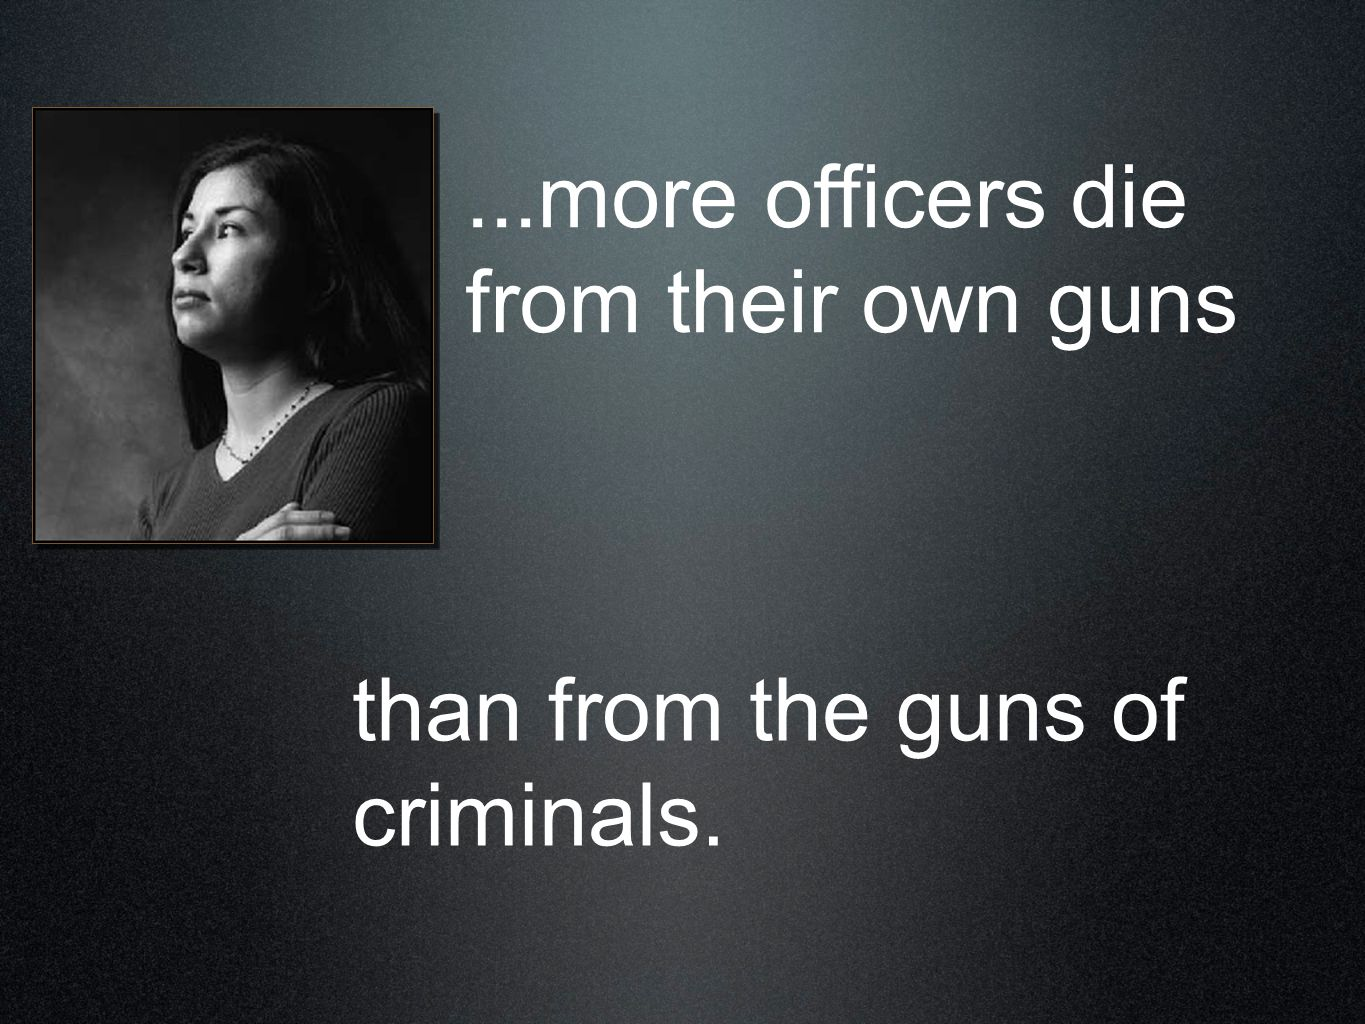 than from the guns of criminals....more officers die from their own guns